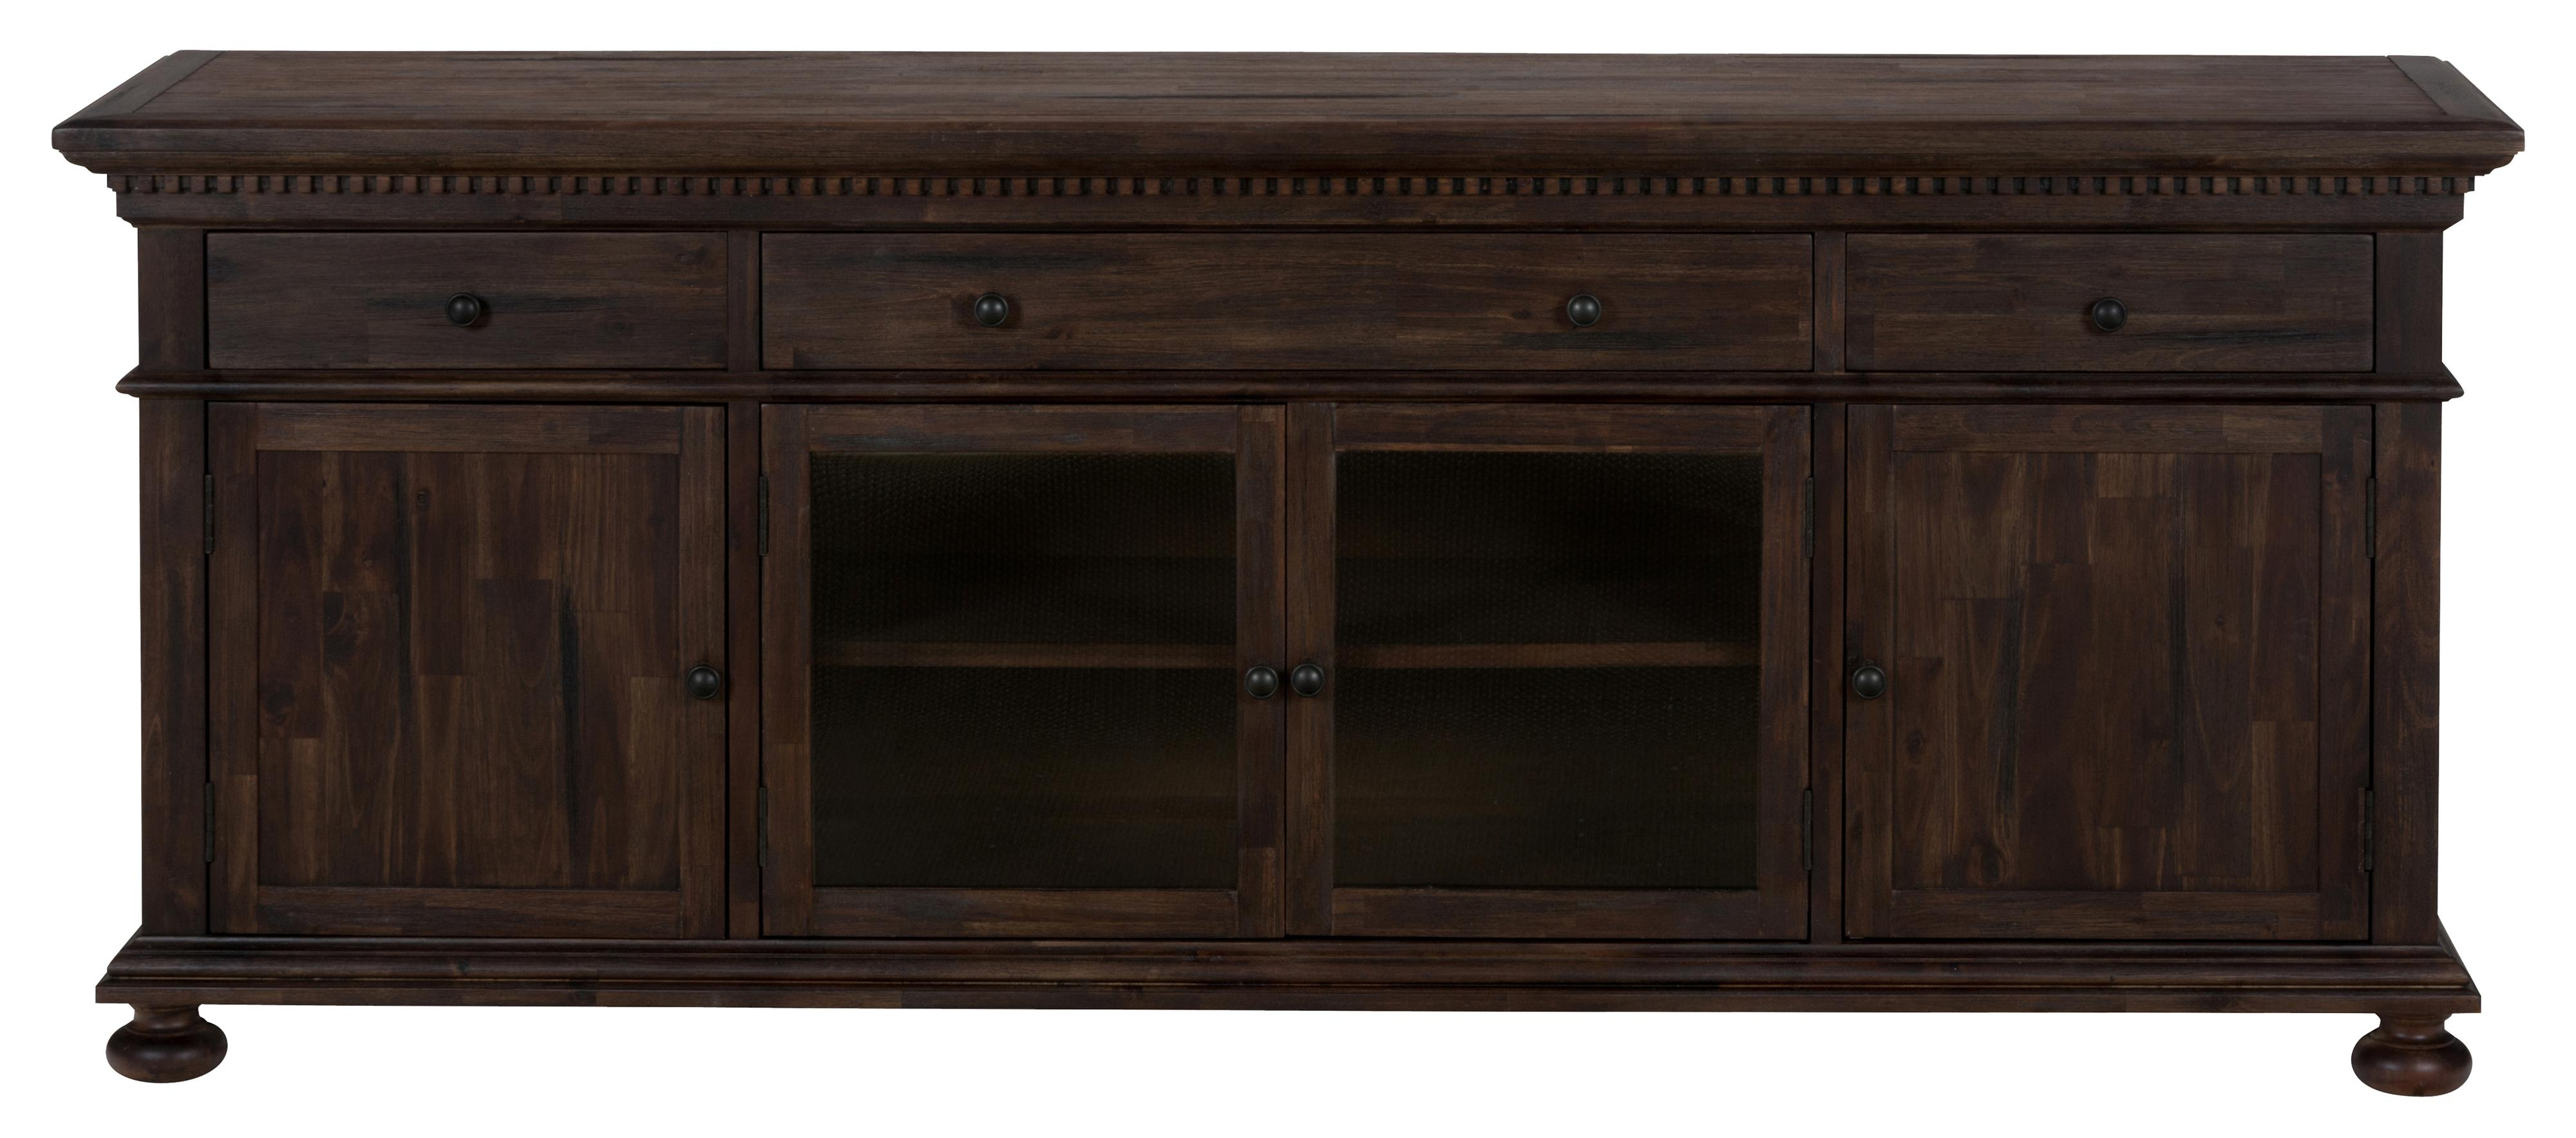 "Morris Home Furnishings Long Beach Yale 80"" Console - Item Number: 679-80"